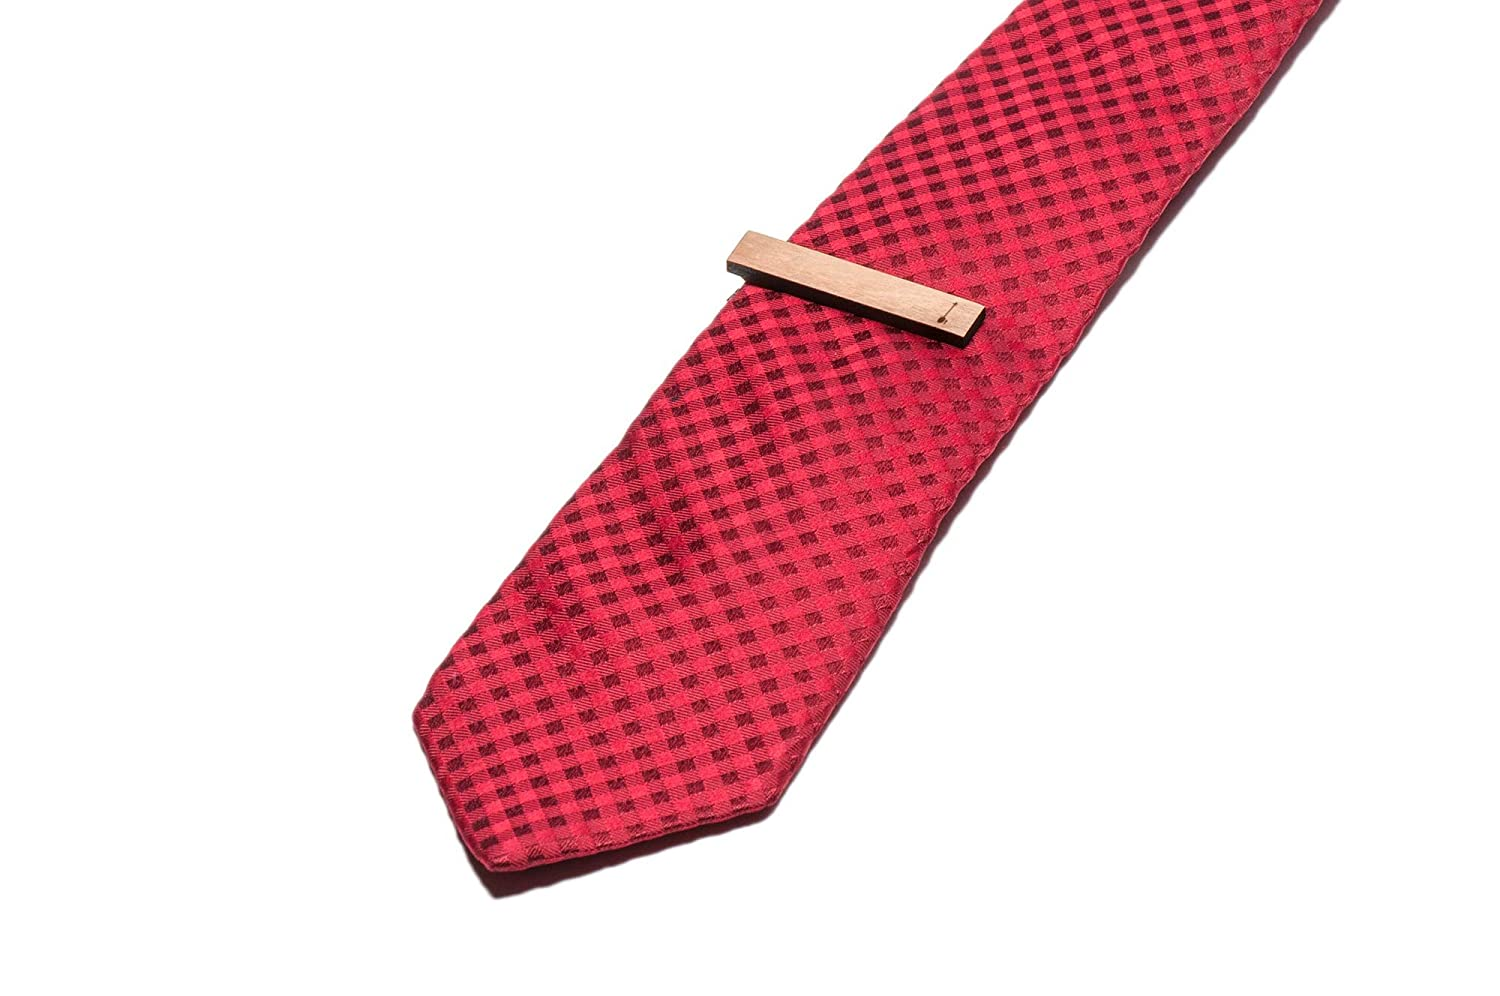 Wooden Accessories Company Wooden Tie Clips with Laser Engraved Shamisen Design Cherry Wood Tie Bar Engraved in The USA